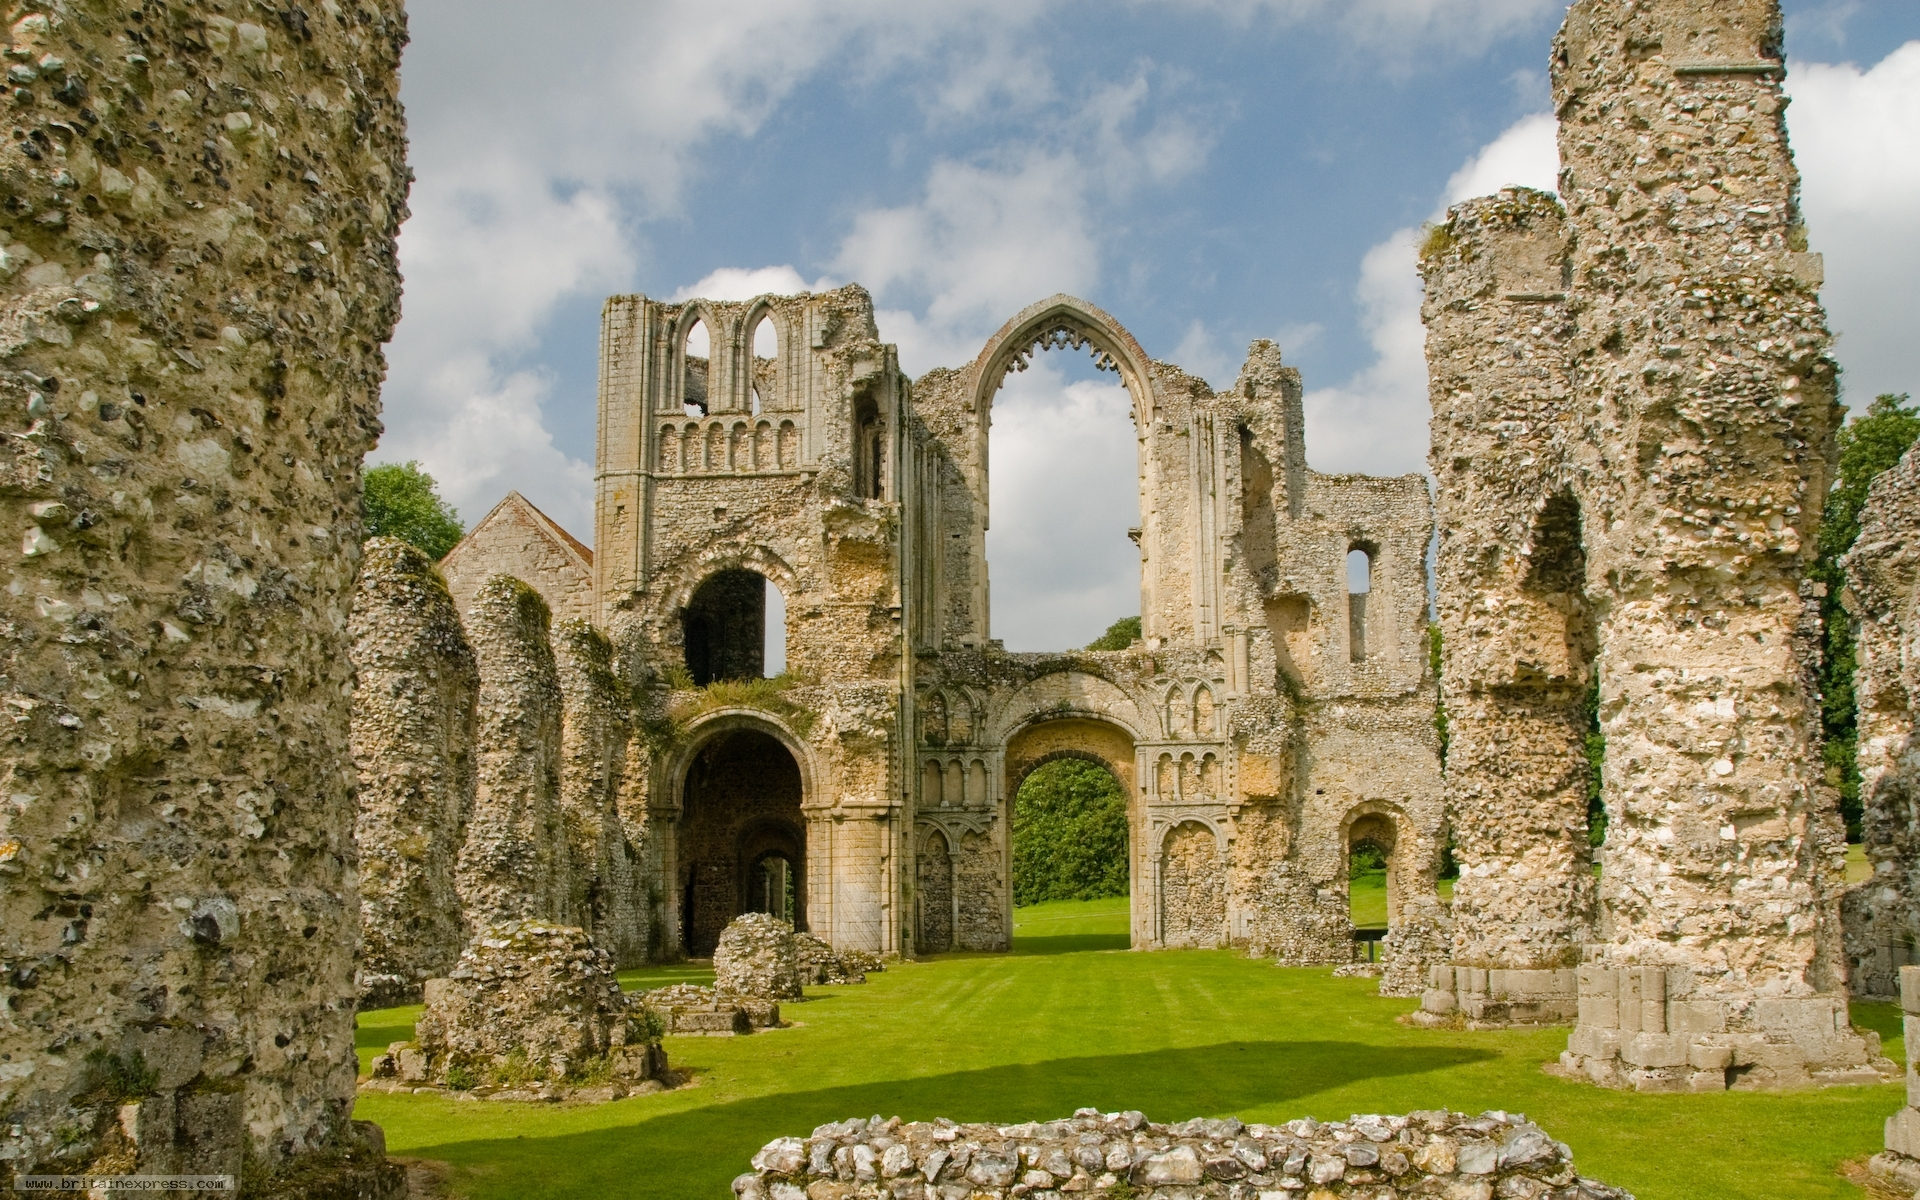 Photo of castle acre priory save this image as desktop wallpaper for your computer free voltagebd Choice Image